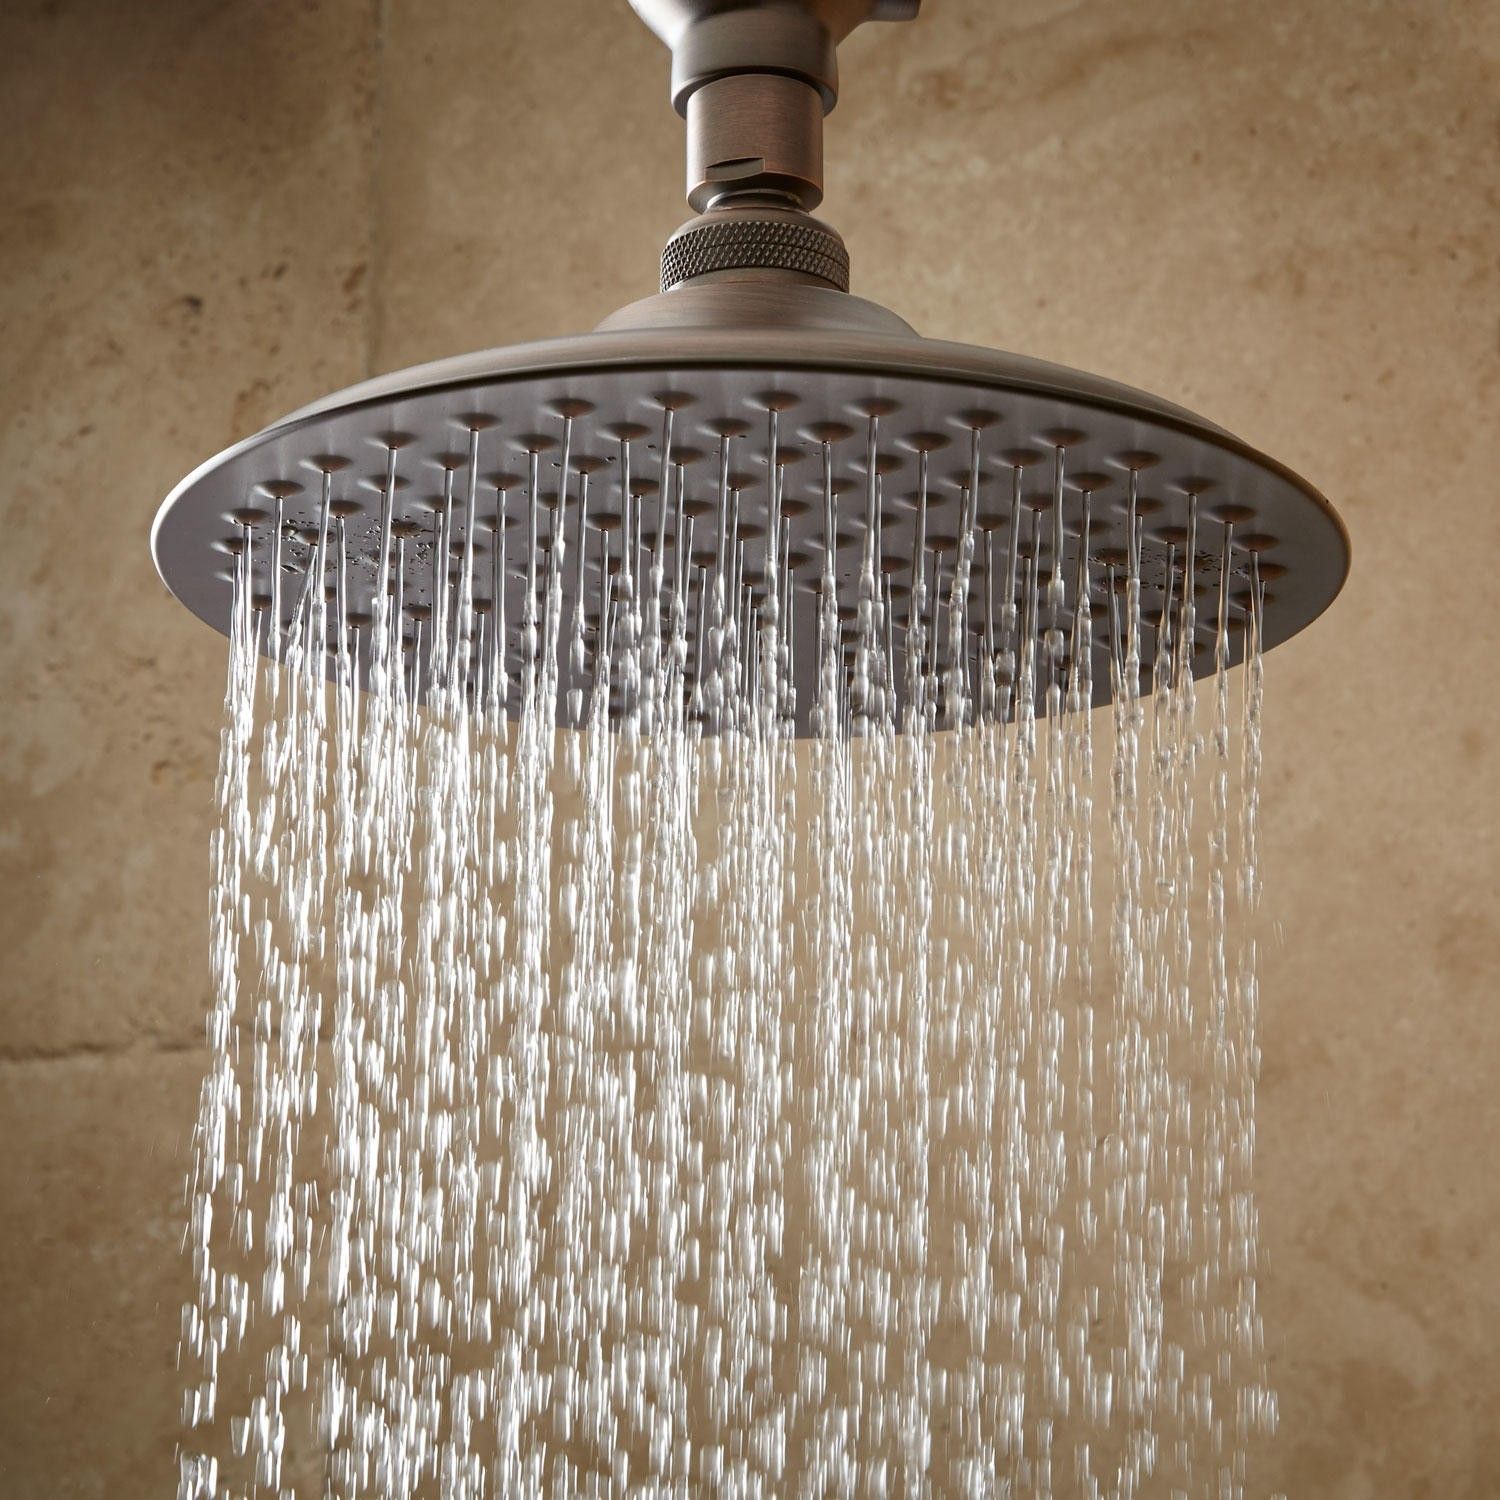 Bostonian Rainfall Shower Head With S Type Shower Arm Oil Rubbed